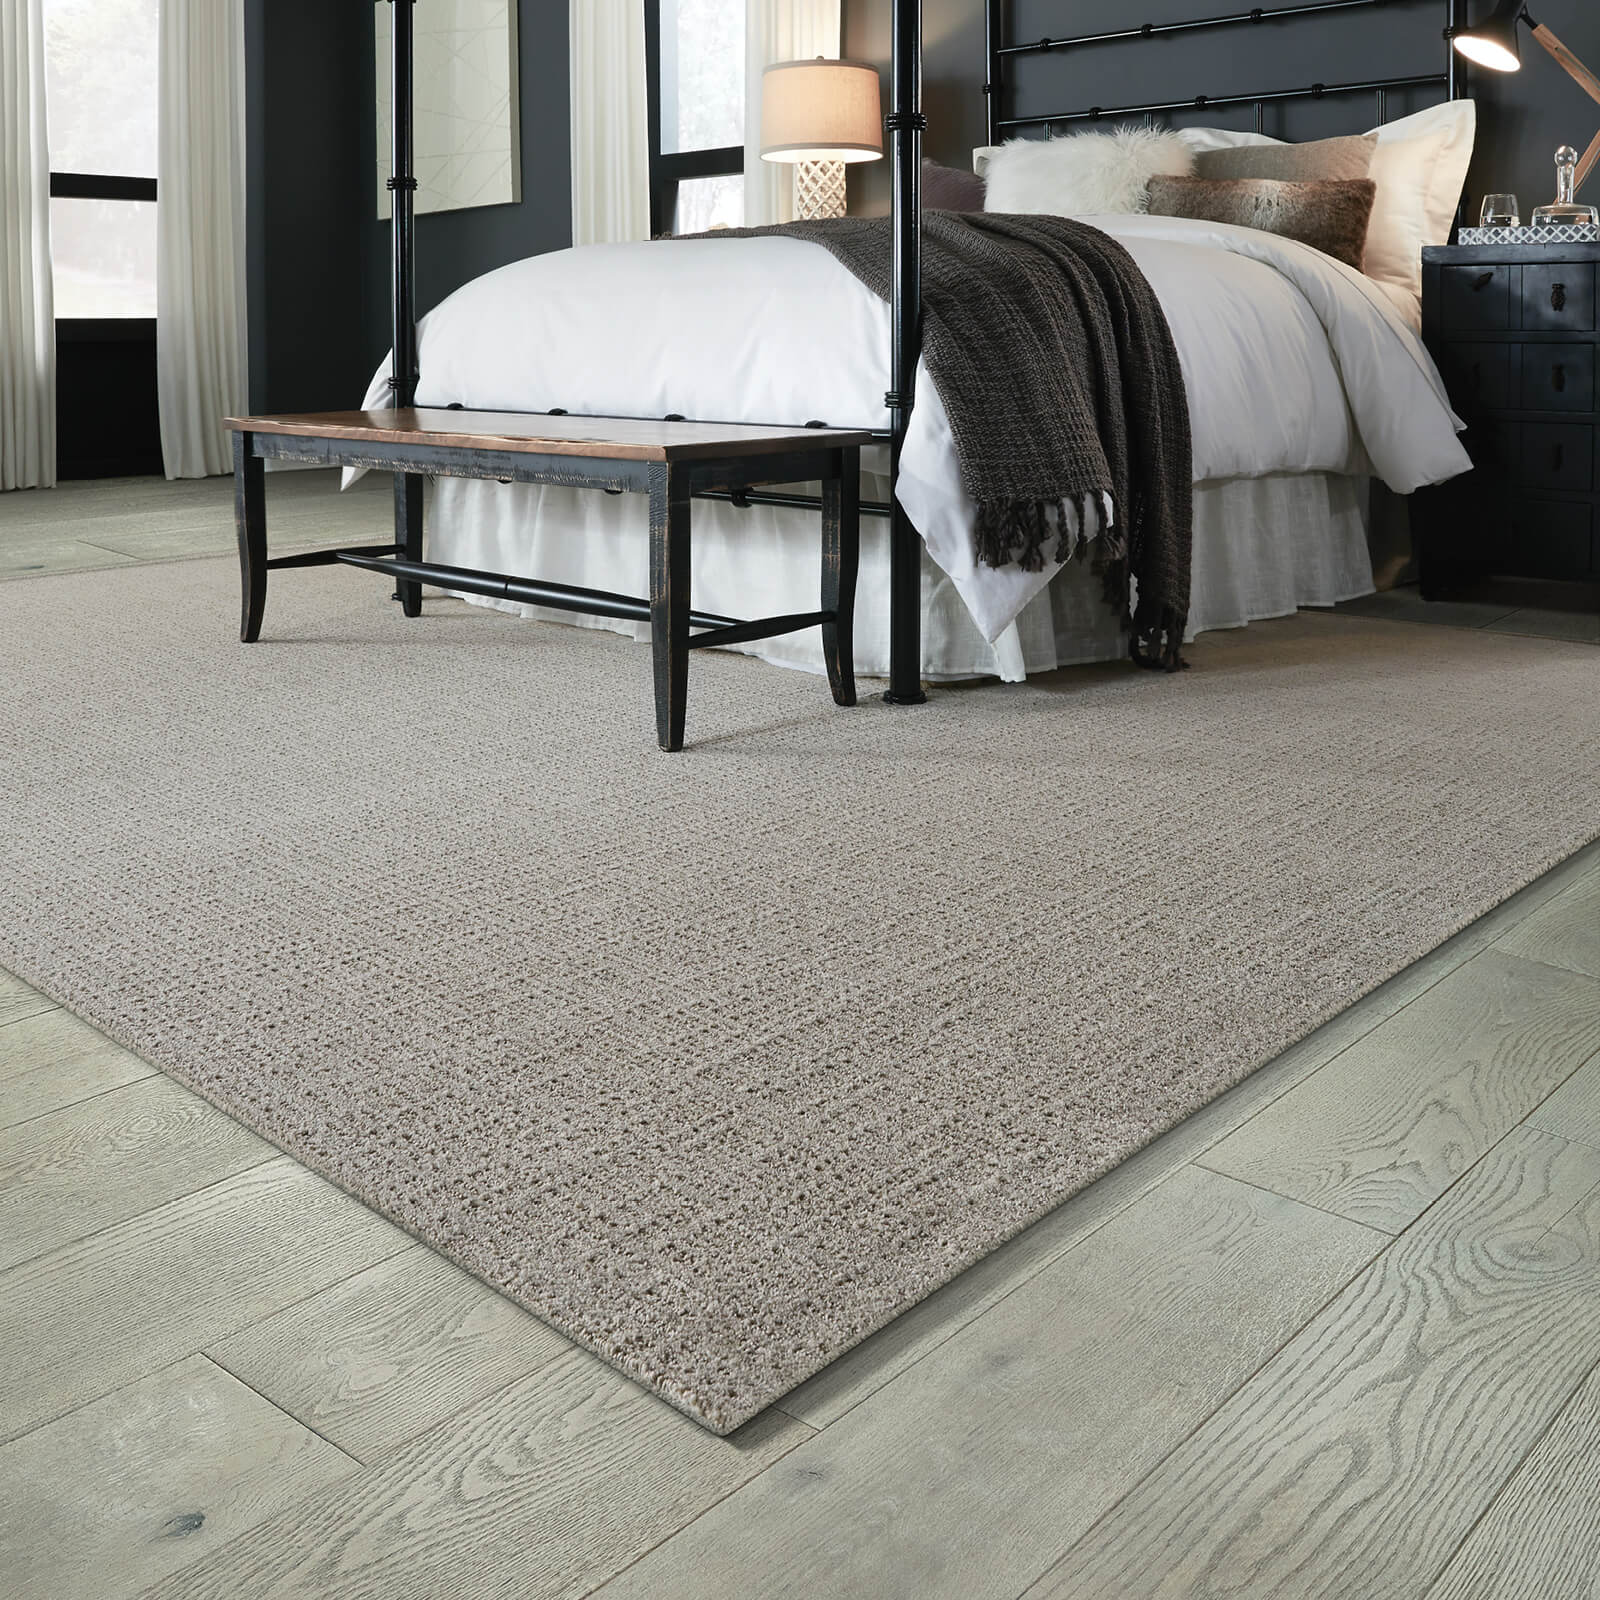 Kensington Area rug for spacious bedroom | Bram Flooring